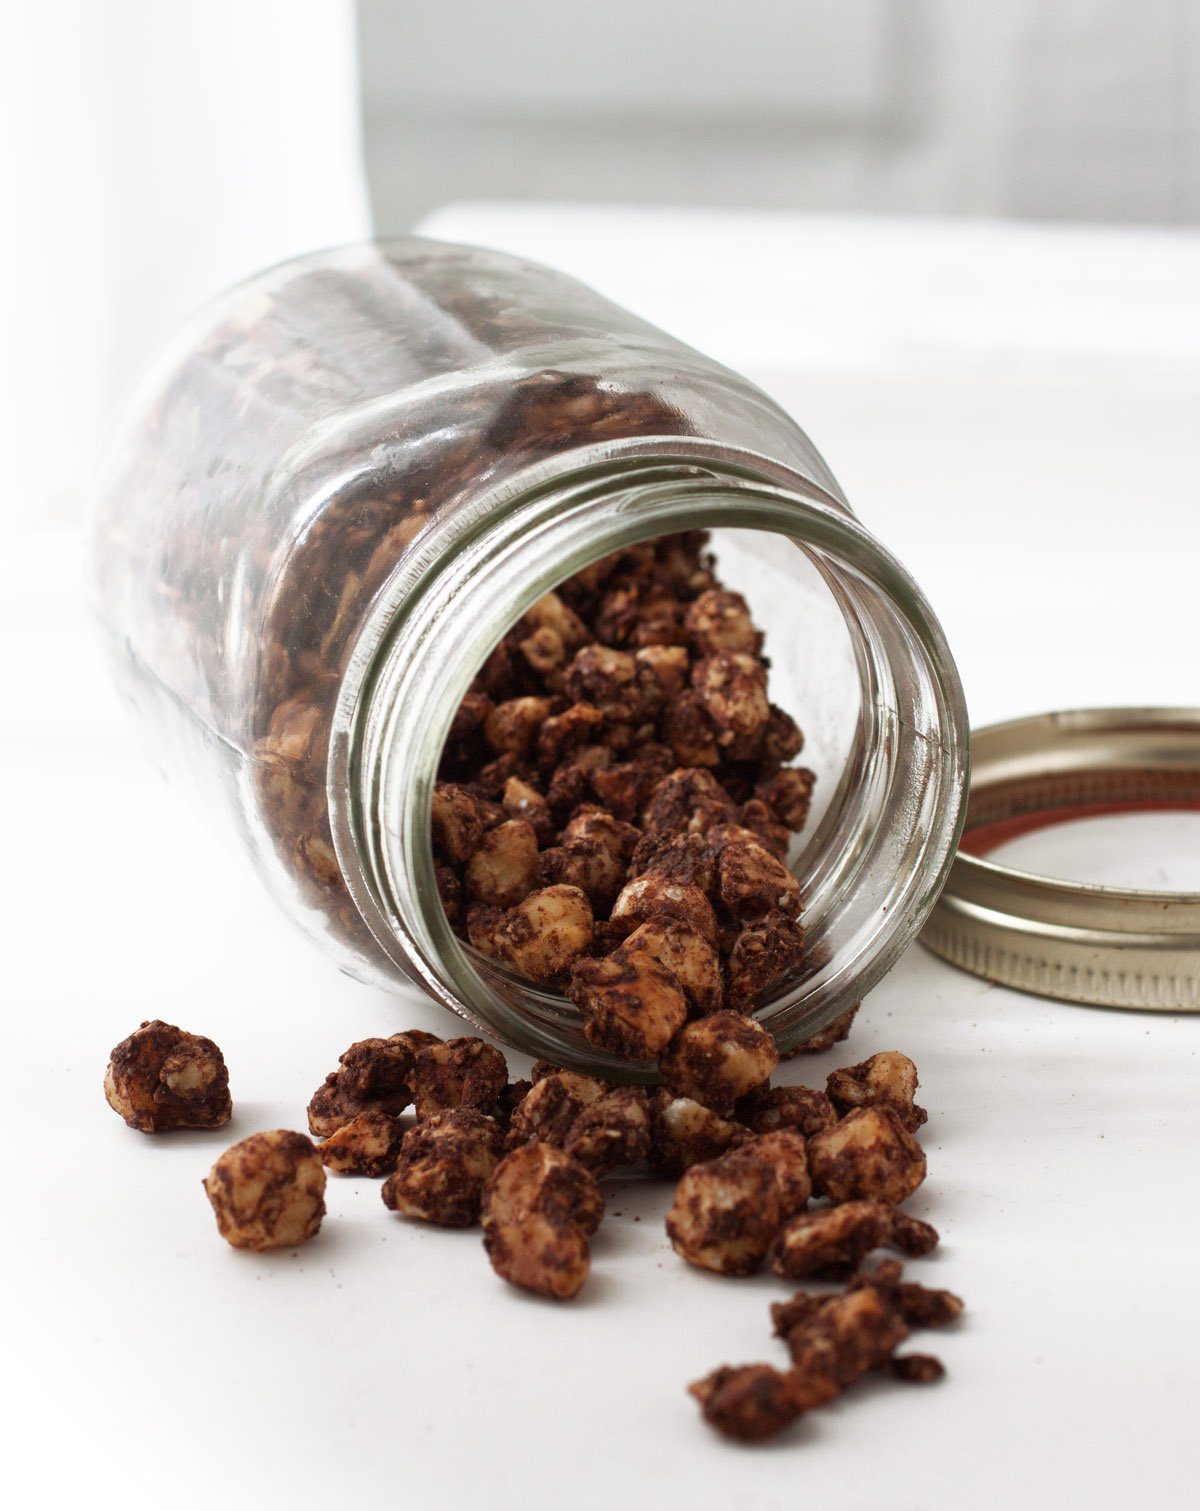 Spiced Chocolate Mongongo Nuts